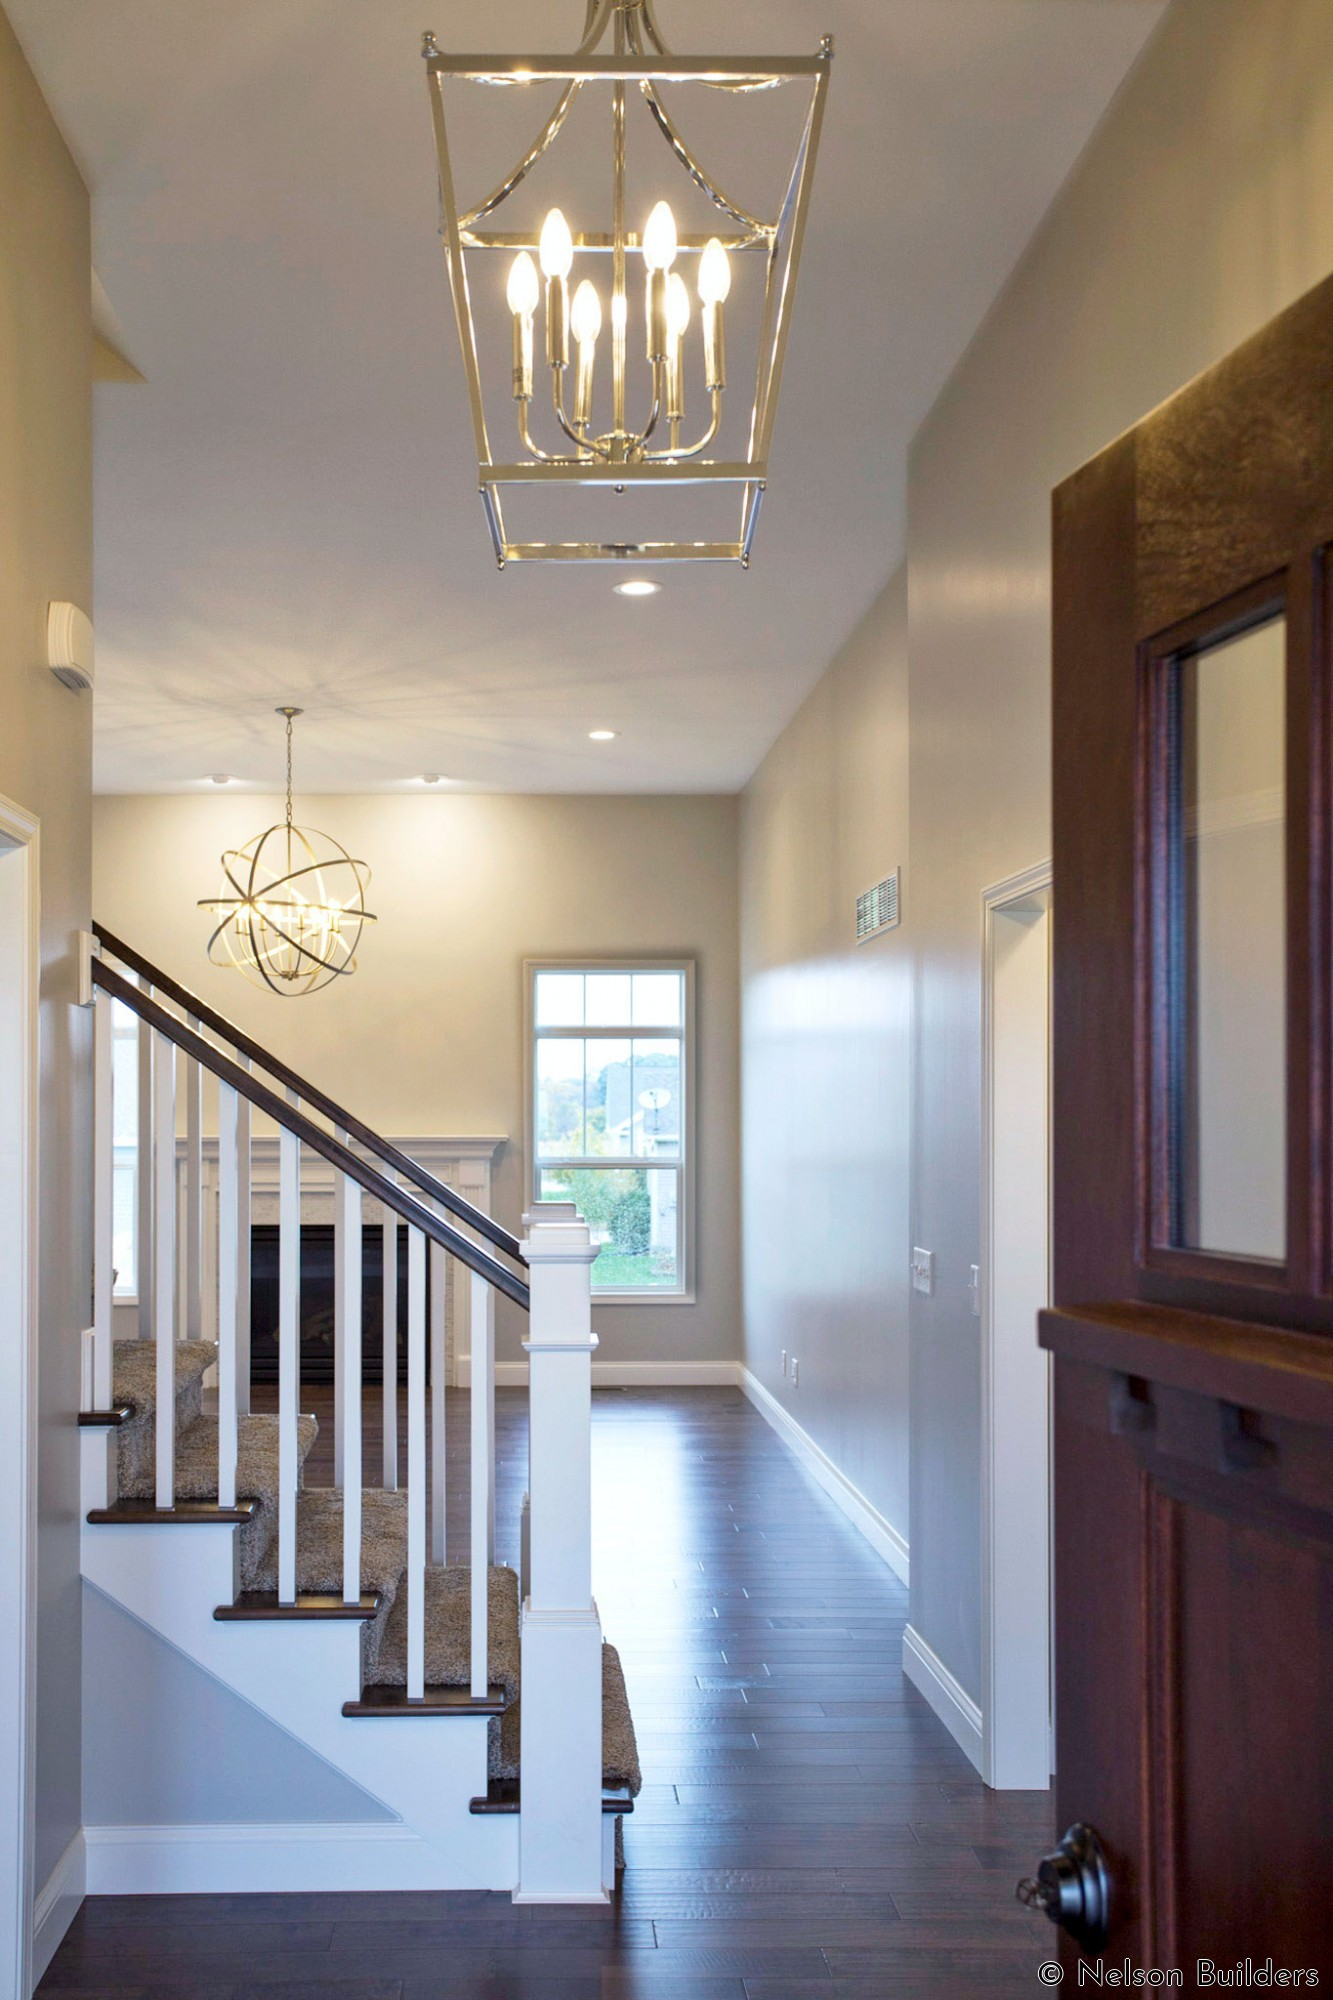 The wood front door opens into the grand foyer and great room of this new Cherrydale plan by Nelson Builders.